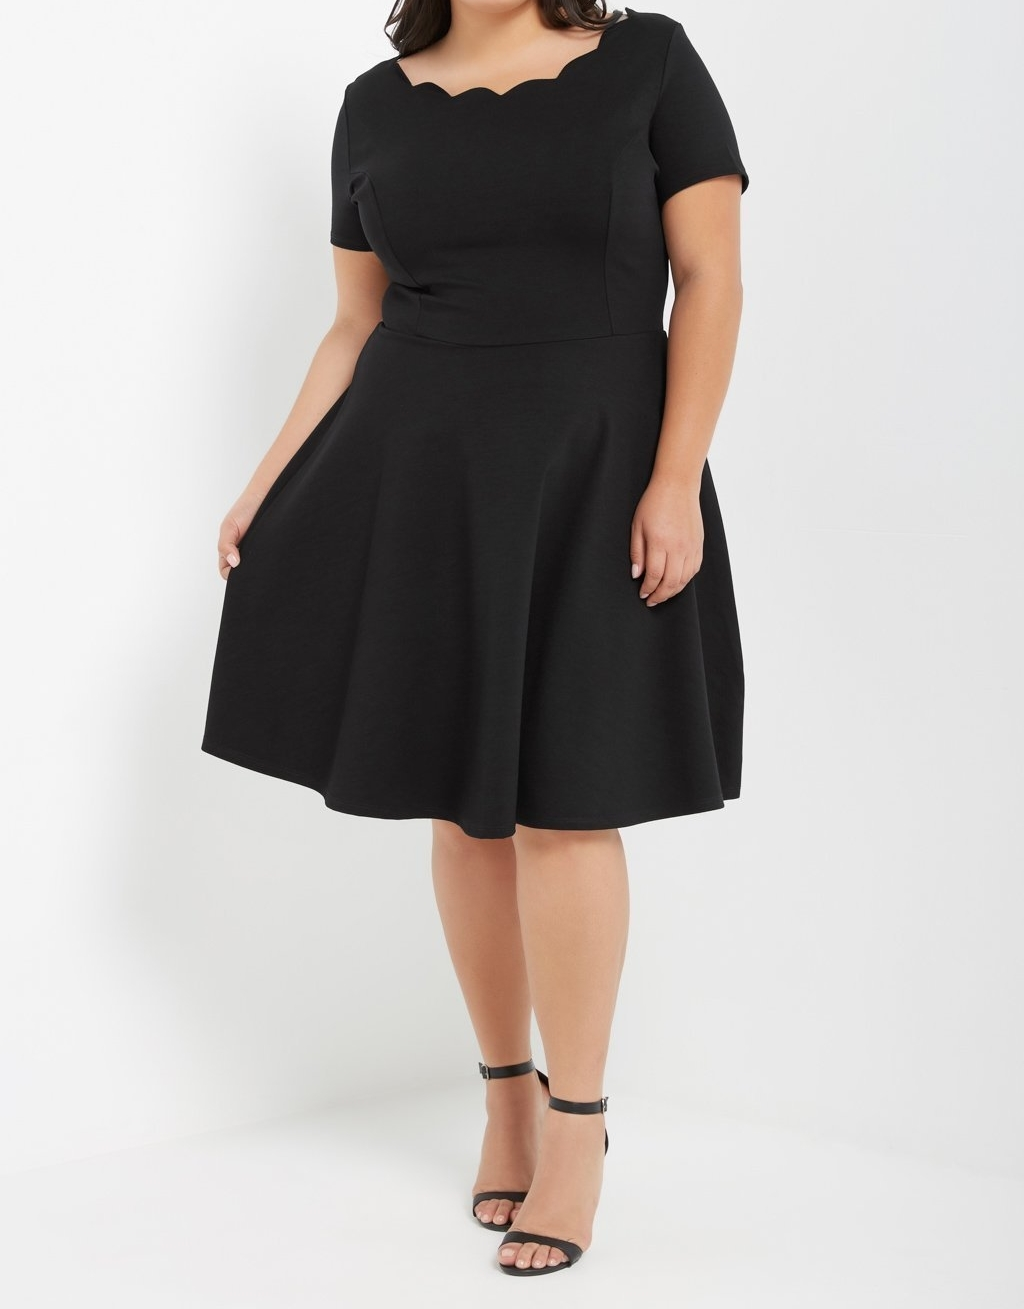 Plus Size Black Dress, Black Classic Dress, Plus Little Black Dress, Plus  Size